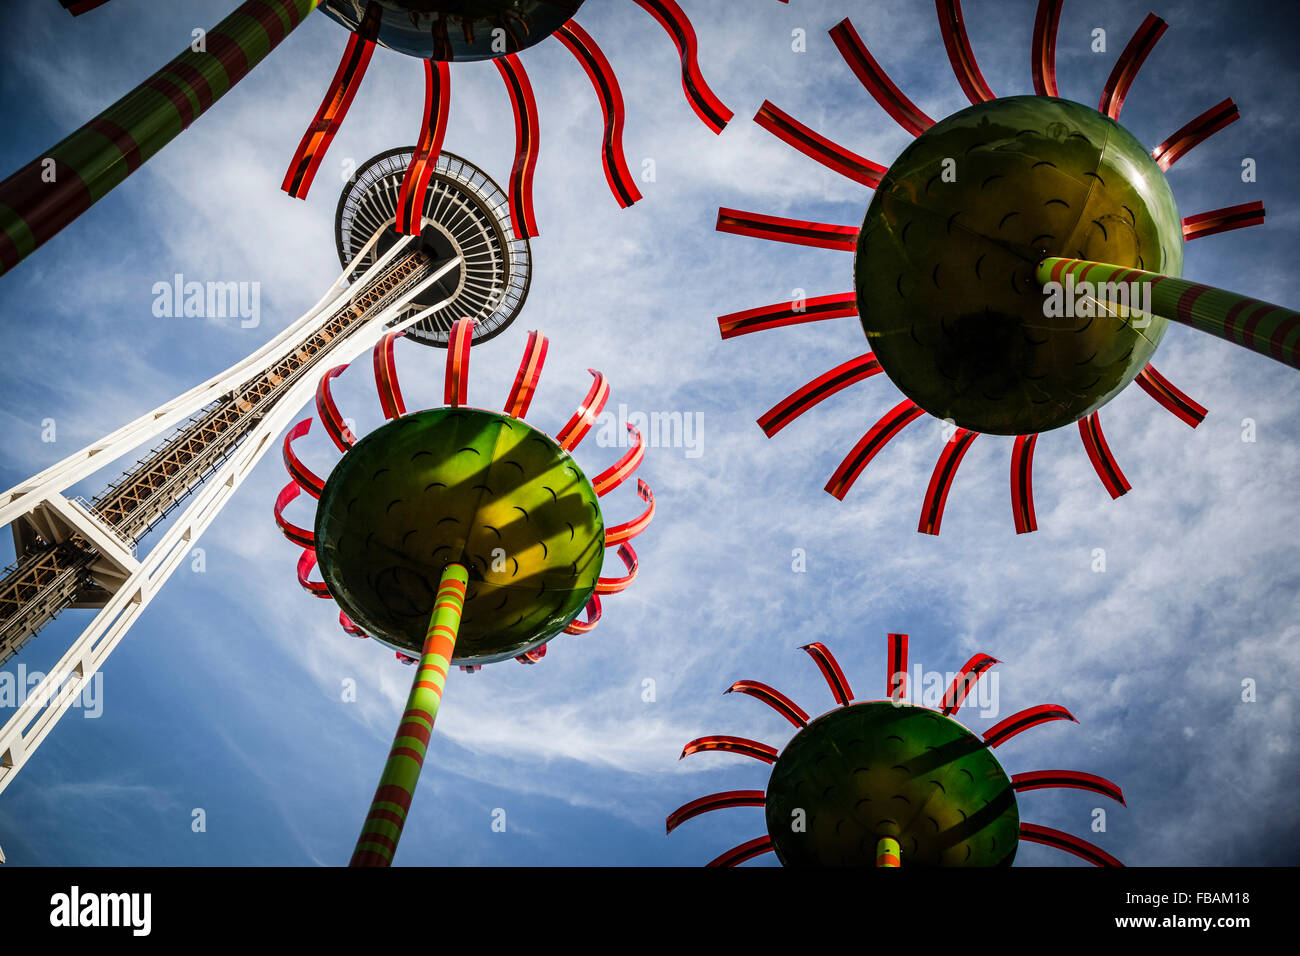 The landmark Space Needle soars overhead with two colorful flower sculptures. - Stock Image